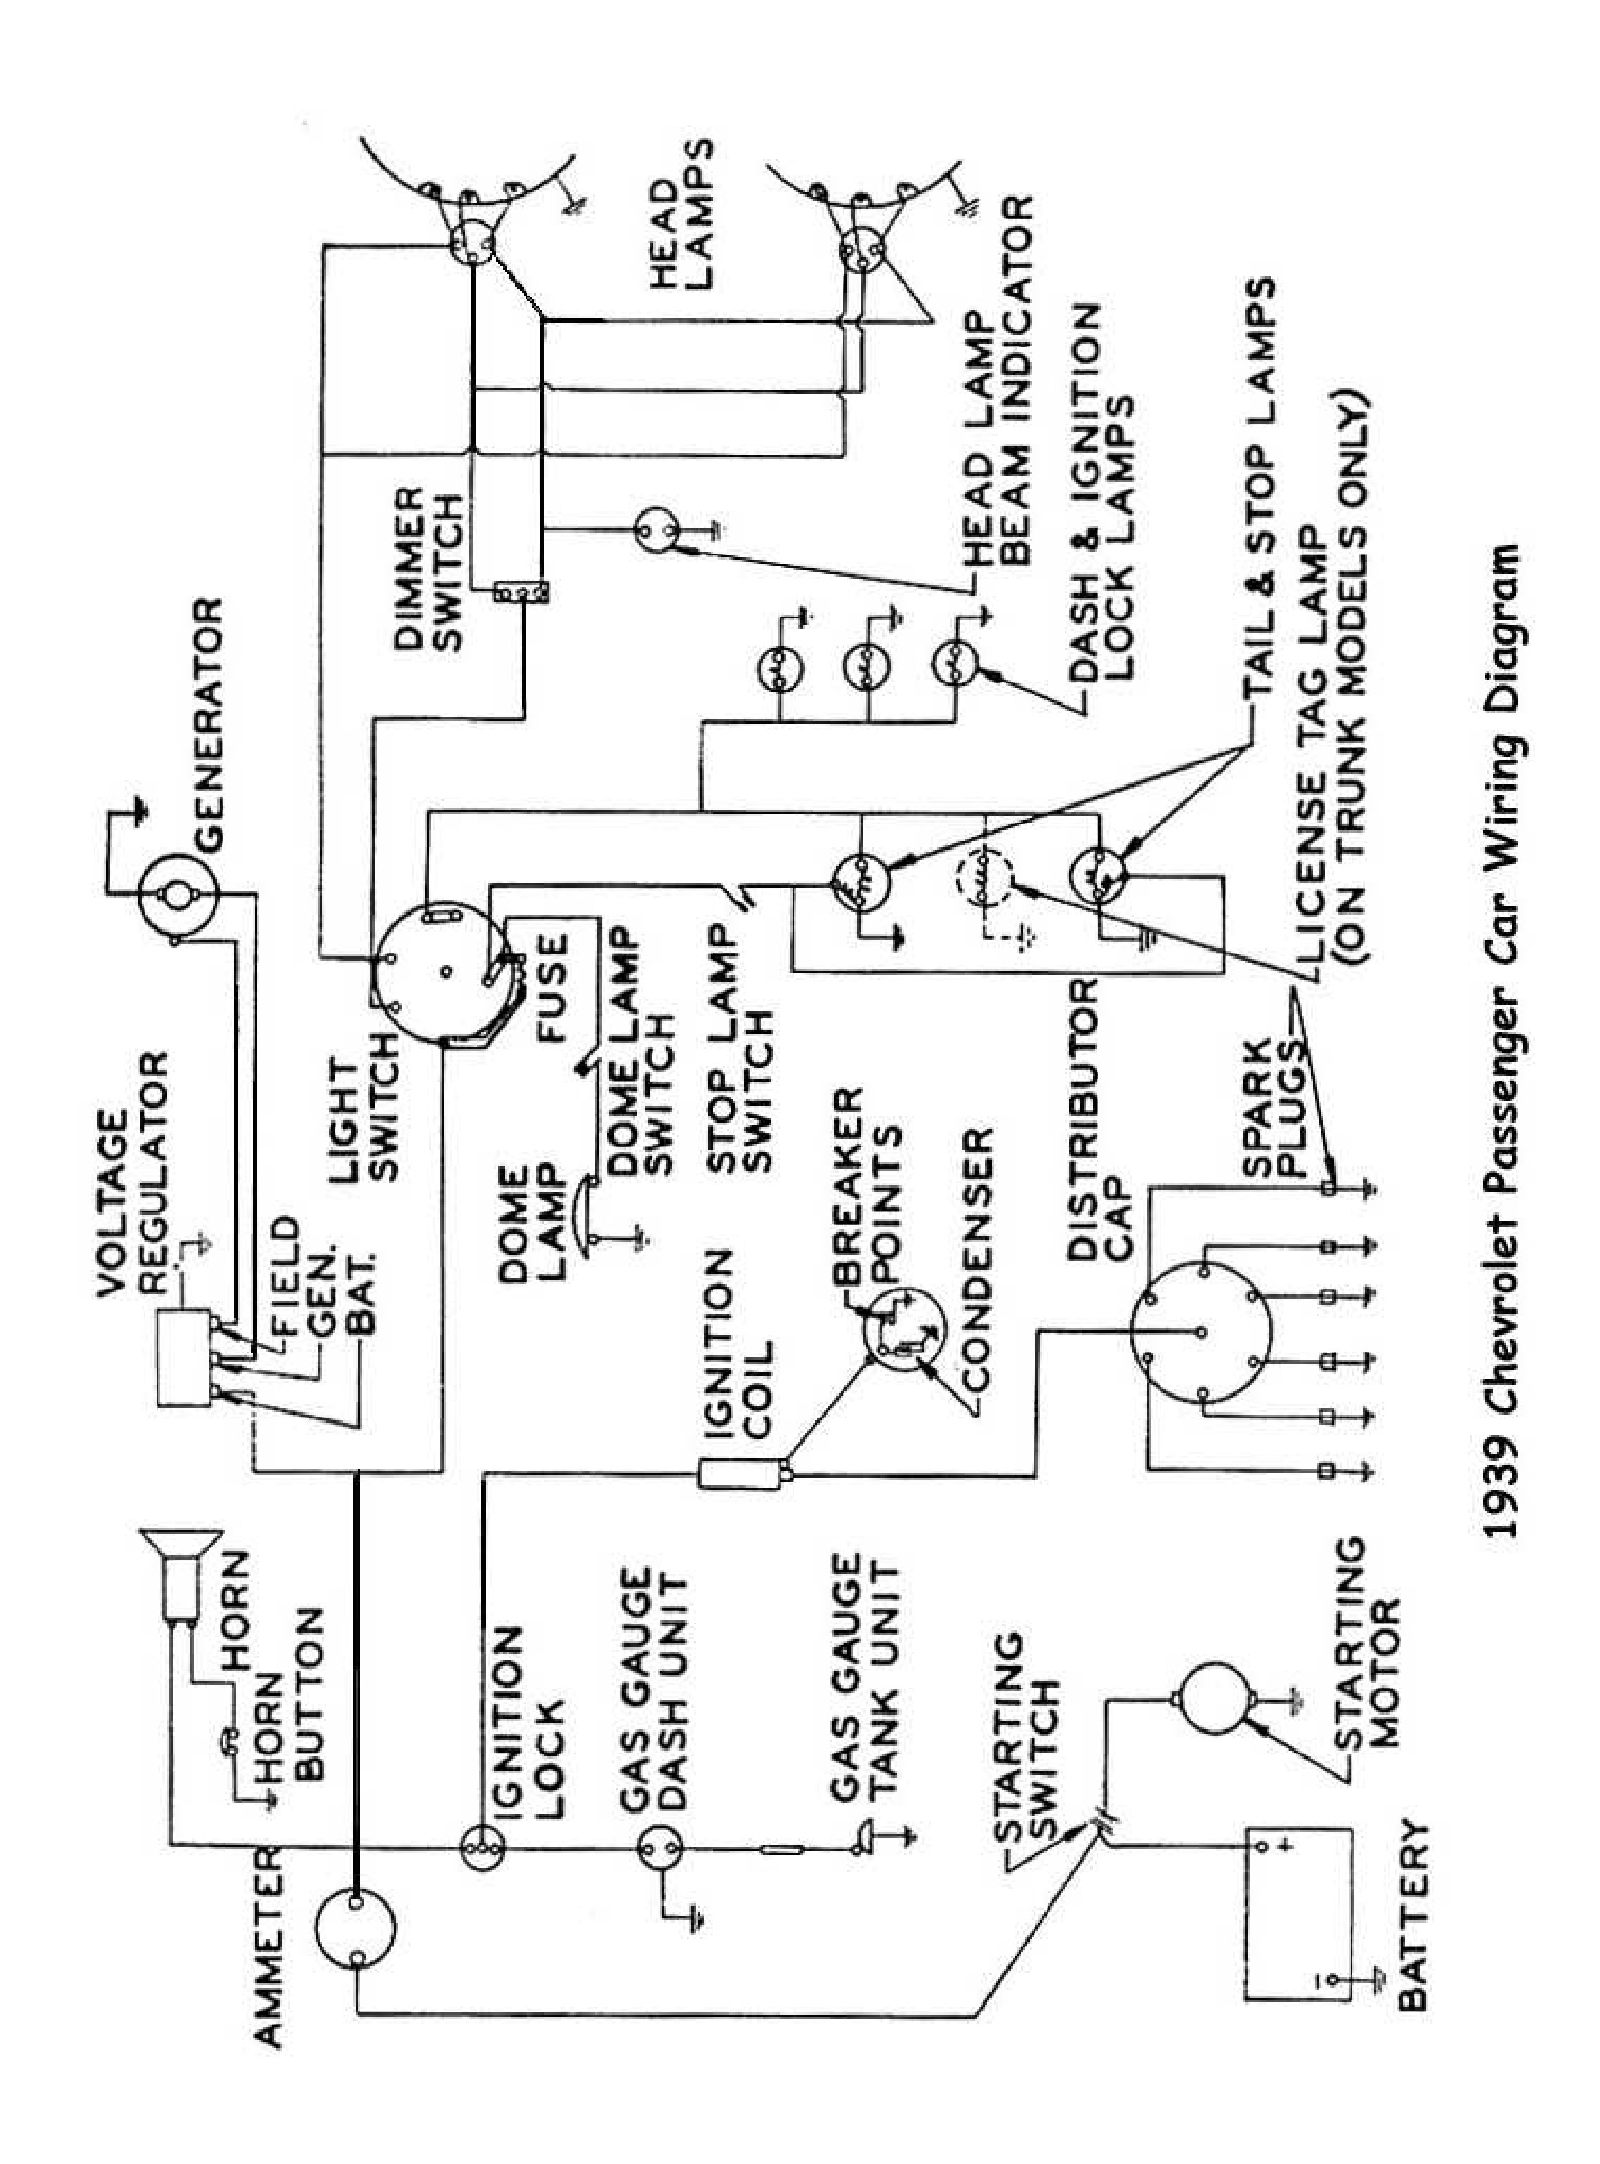 39car chevy wiring diagrams Coil and Distributor Wiring Diagram at sewacar.co